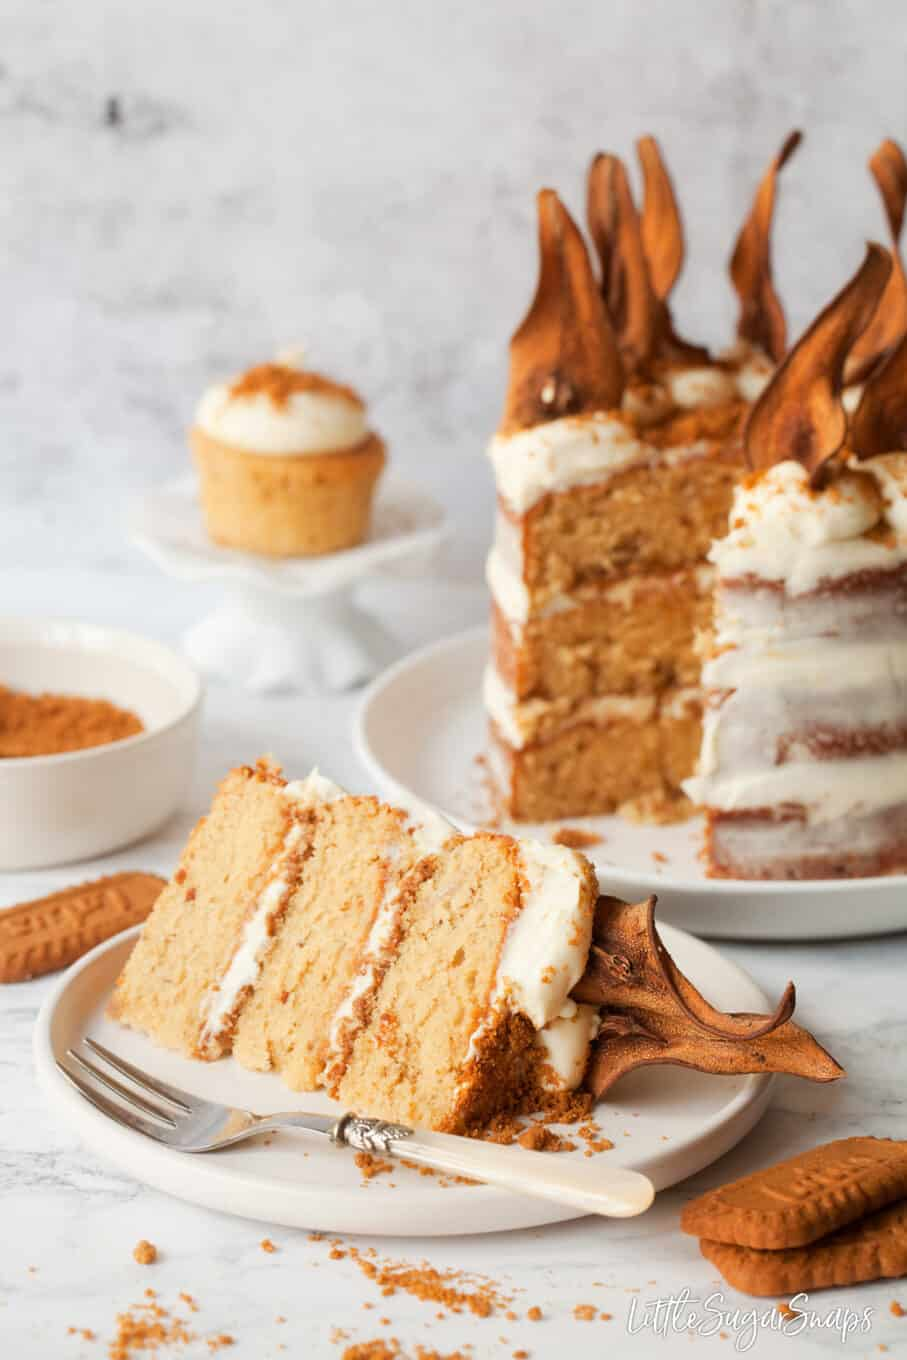 A slice of Biscoff cake on a plate with the cut cake behind. Revealing layers of sponge cake, biscoff spread and white chocolate frosting. Biscoff biscuits in the foreground and a cupcake behind